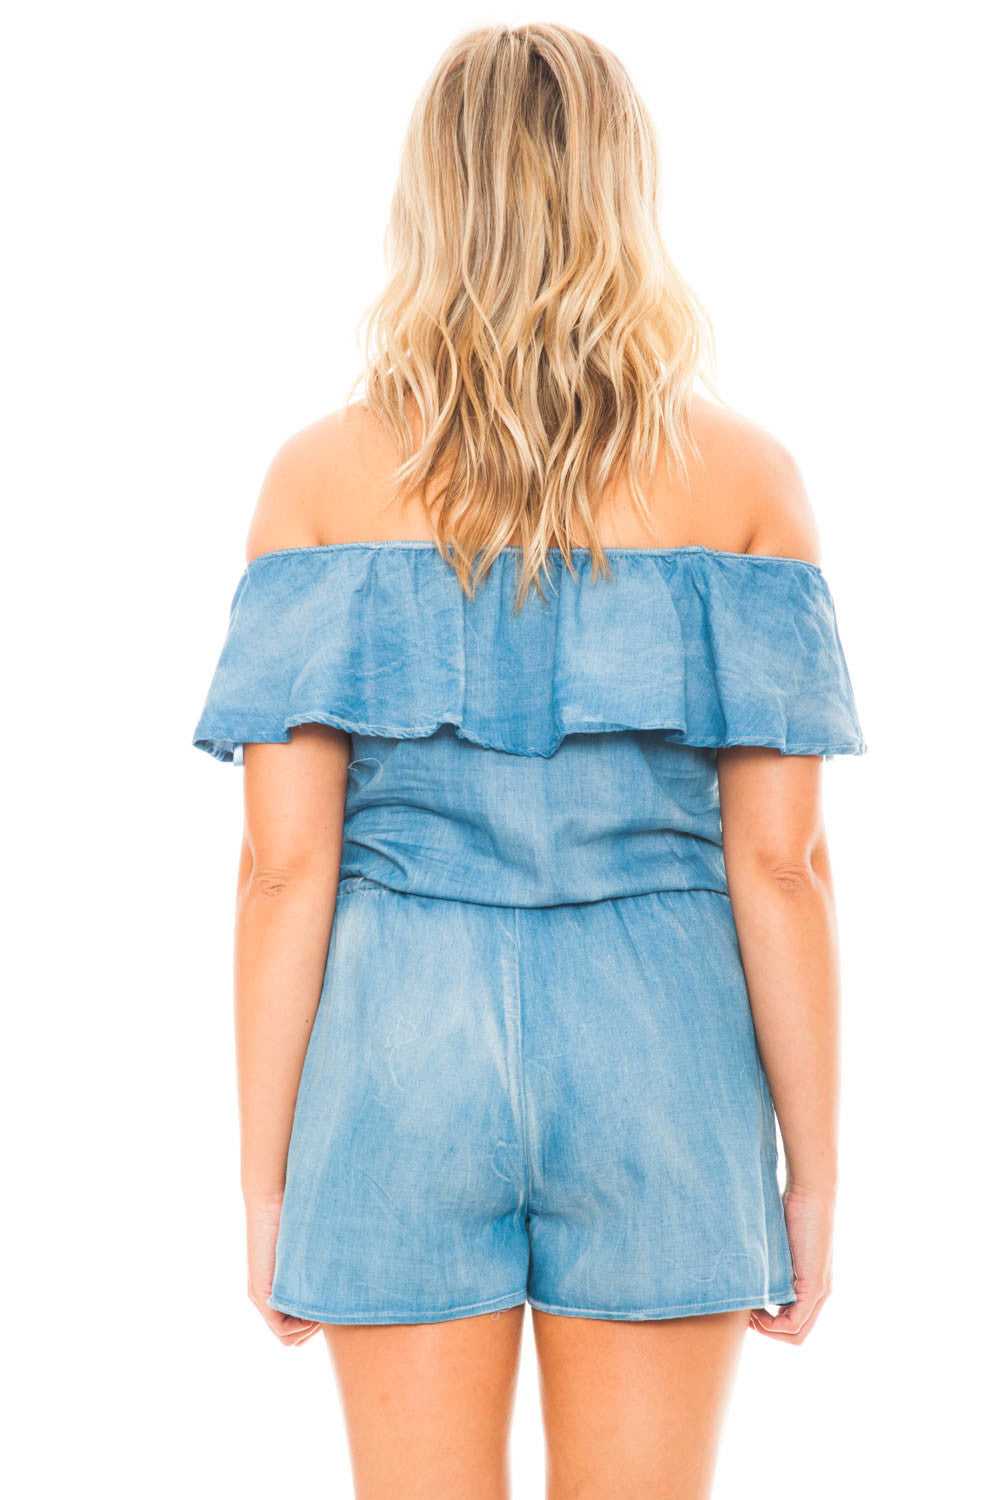 Romper - Ruffled Off Shoulder Embroidered Romper